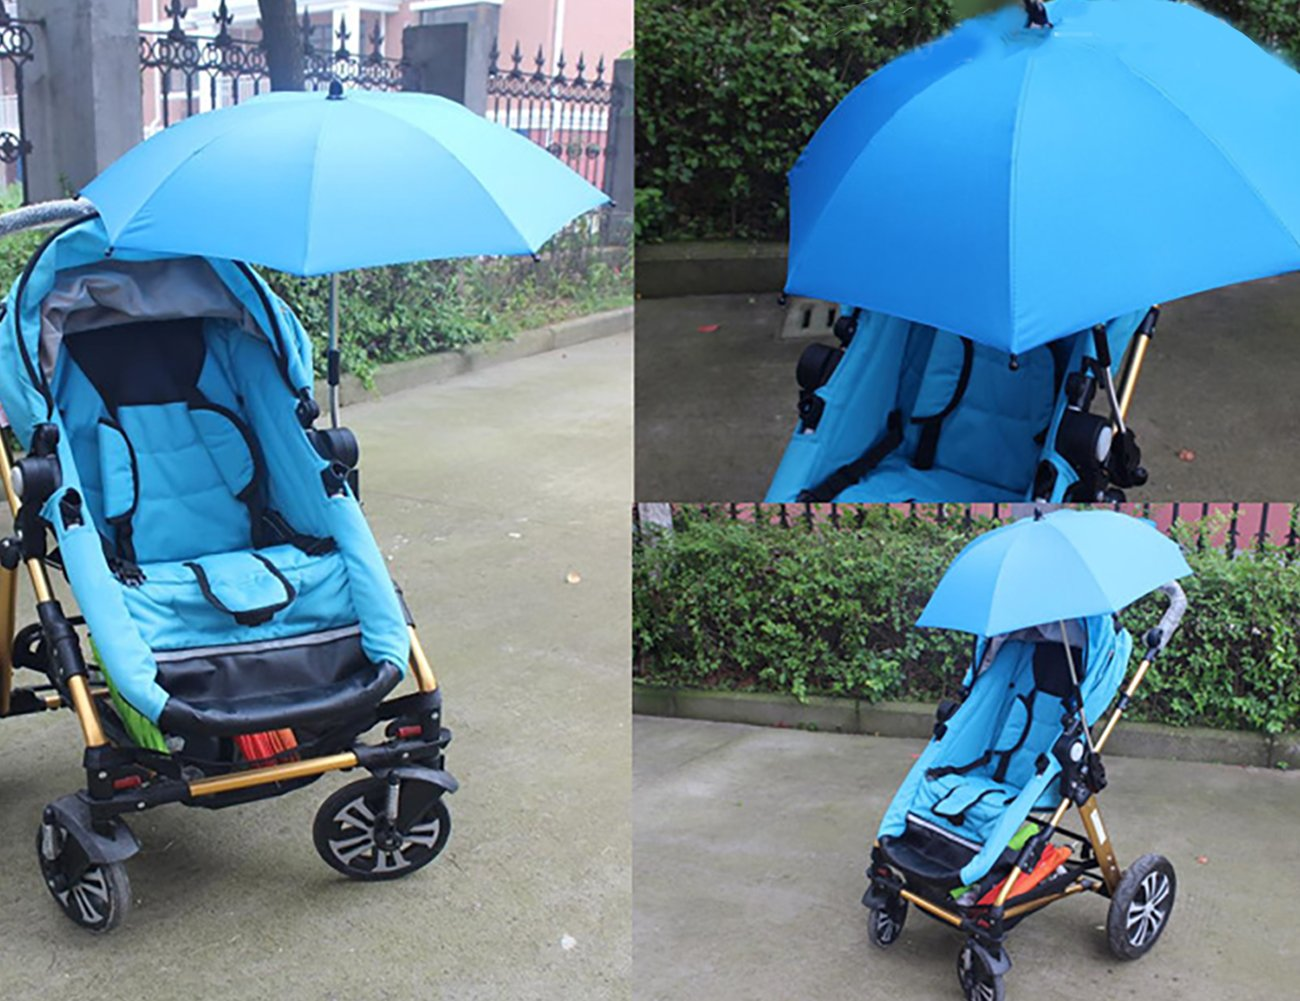 THEE Wheelchair Pushchair Baby Stroller Parasol Rain Sun Canopy Stretchable Pram Stroller Umbrella Holder Clip Clamp by THEE (Image #2)